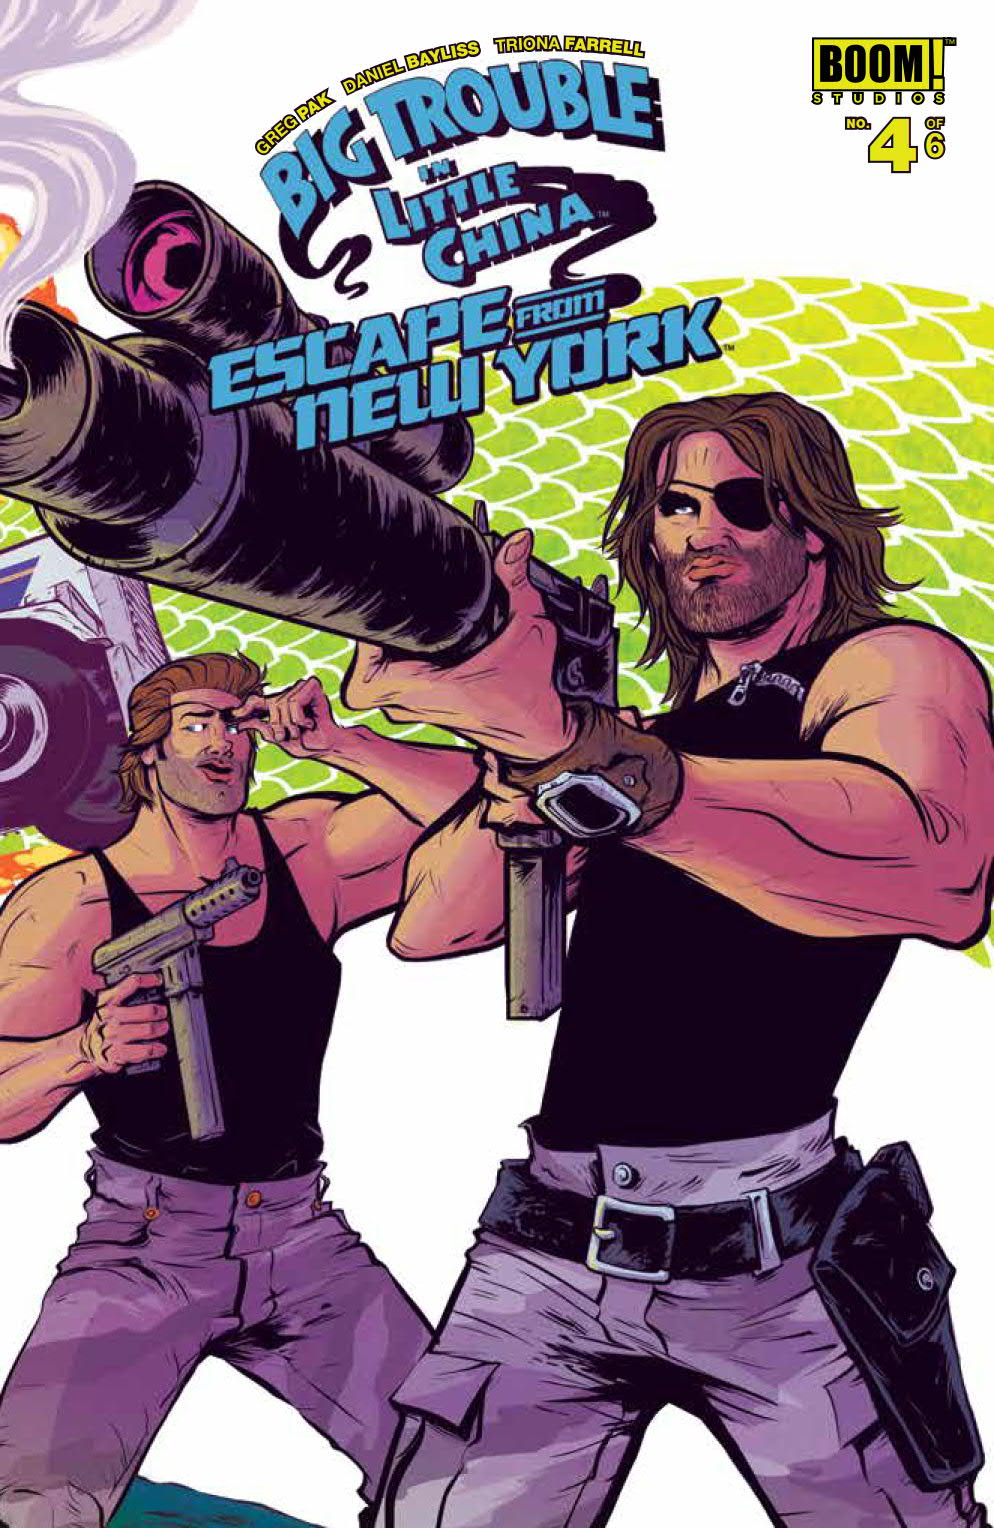 img - Big Trouble in Little China / Escape From New York #4